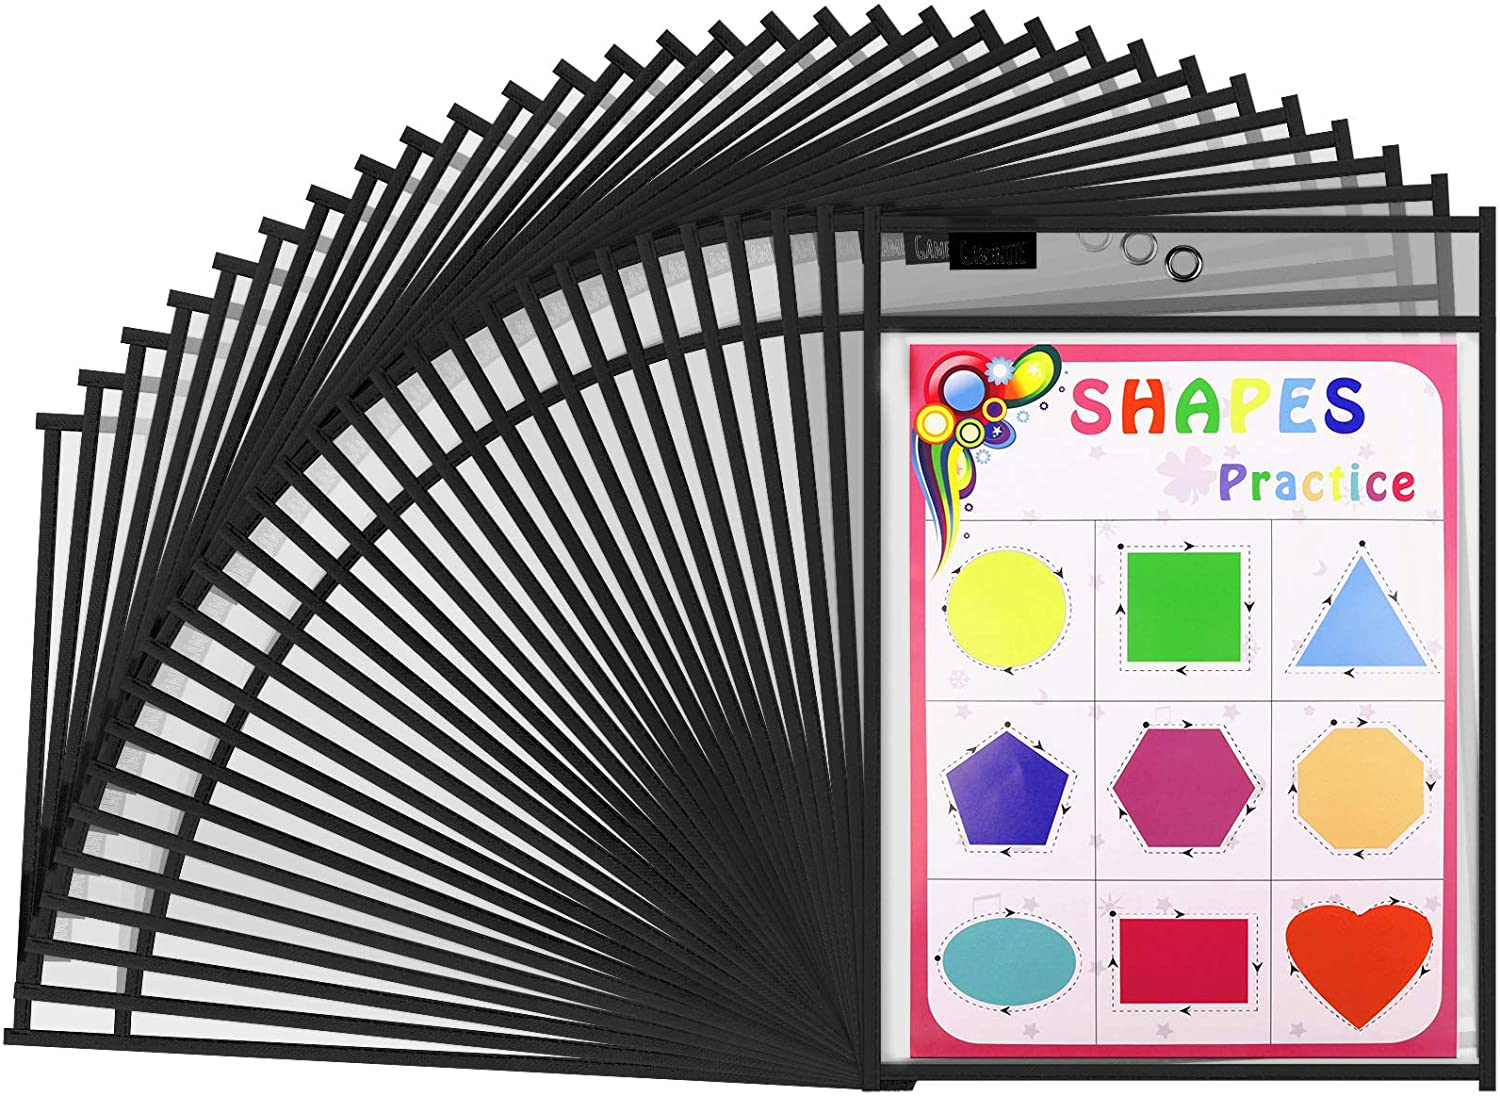 Gamenote Dry Erase Pockets 30 Pack with Rings - Oversized Reusable Plastic Sleeves Shop Ticket Holders Sheet Protectors Teacher Supplies for Classroom Organization (Black) : Office Products